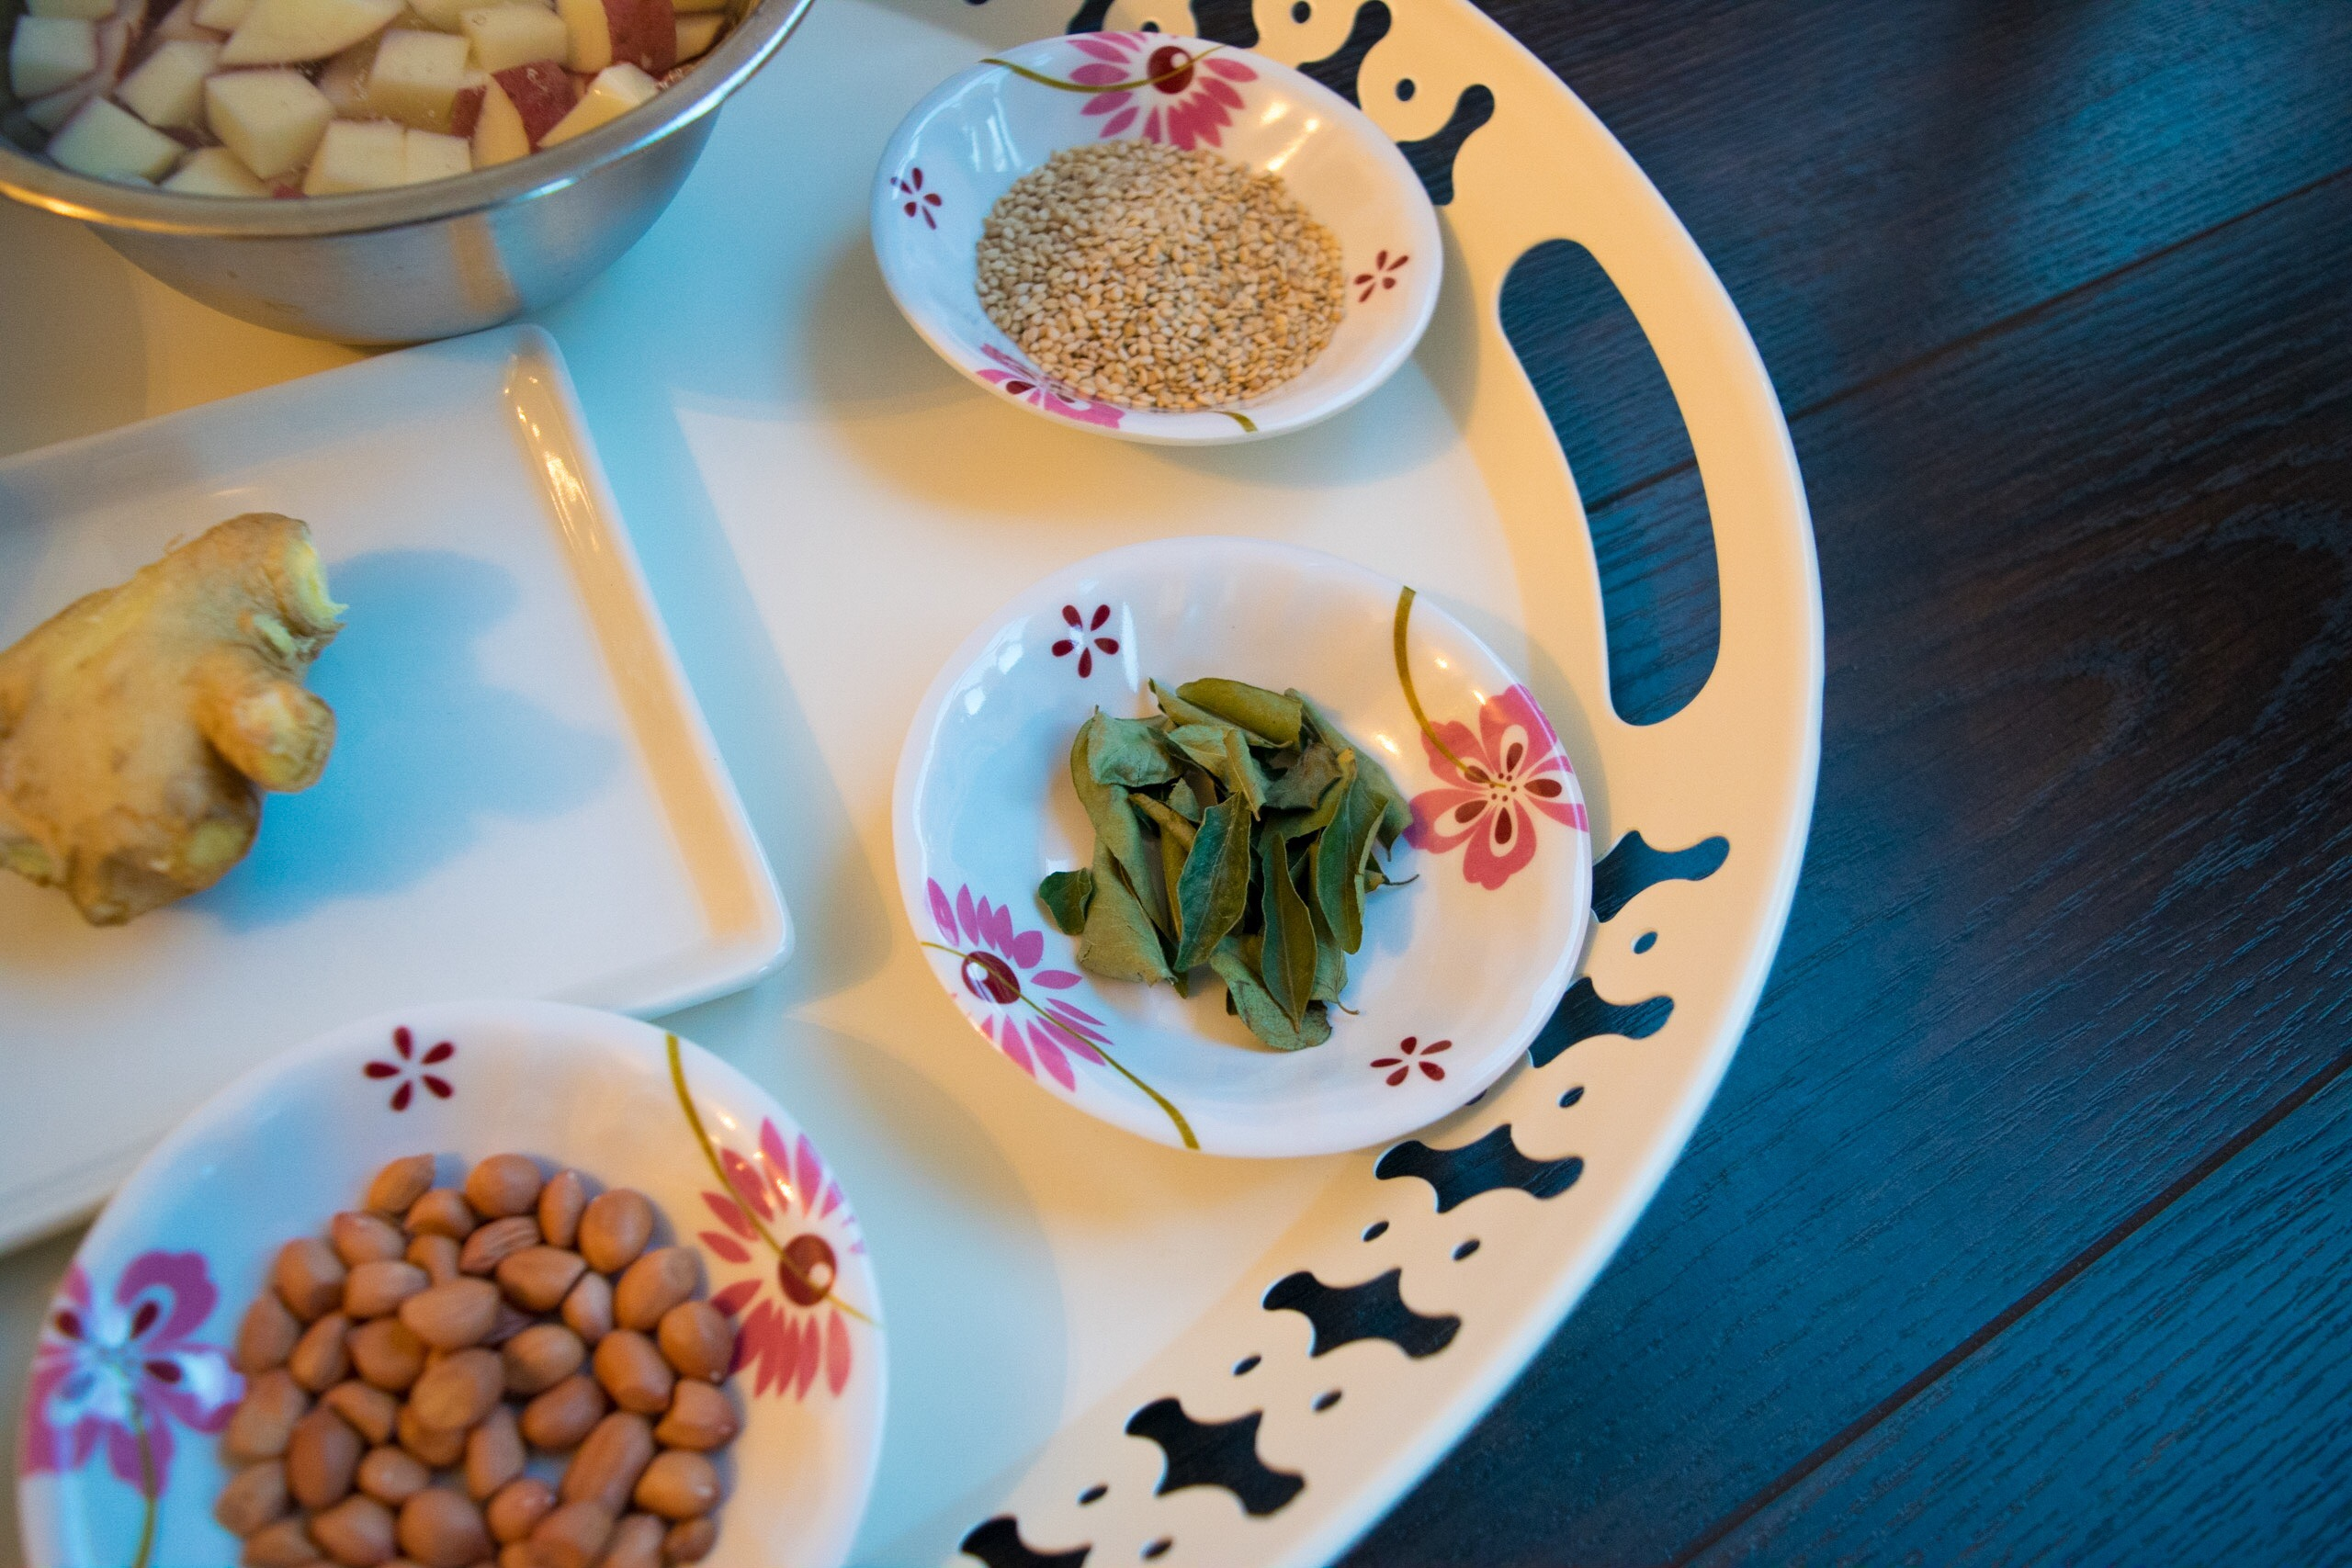 Sesame seeds, Curry leaves, Peanuts